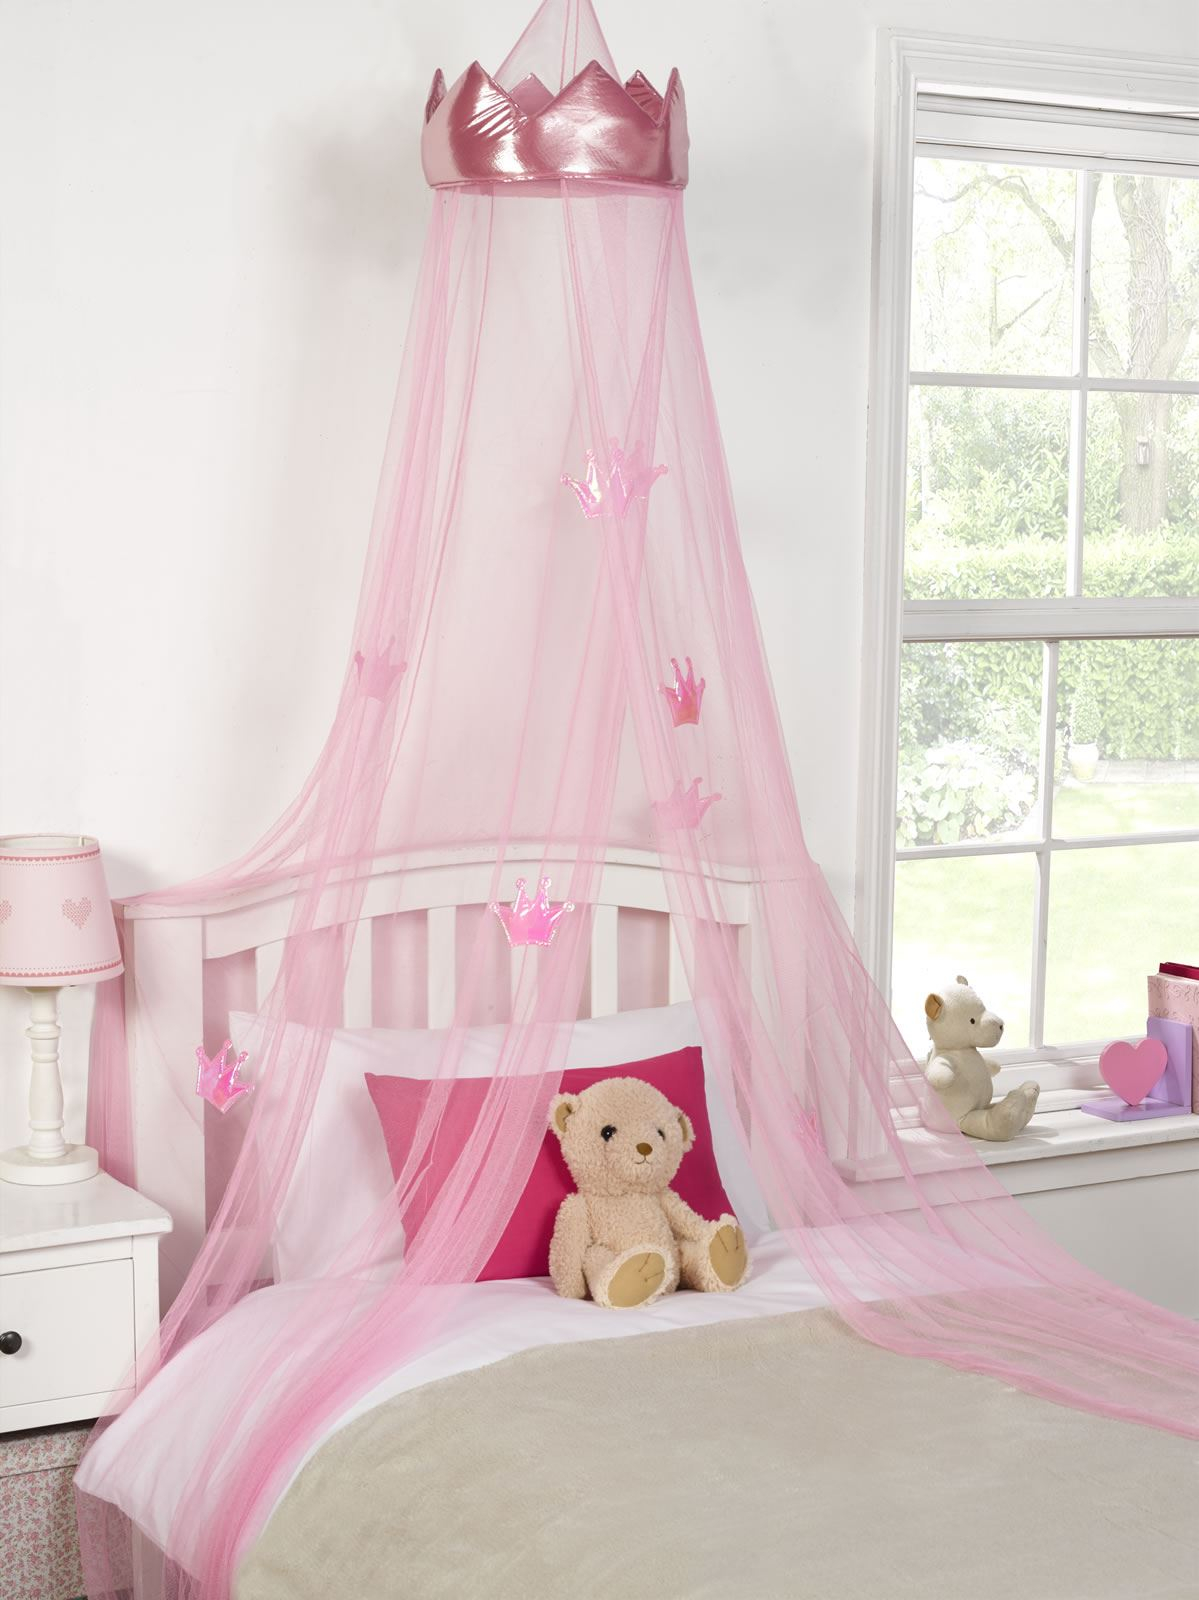 Picture of: Wall Mounted Bed Canopy Crown Svc2baltics Creative Bed Crown Canopy Layjao